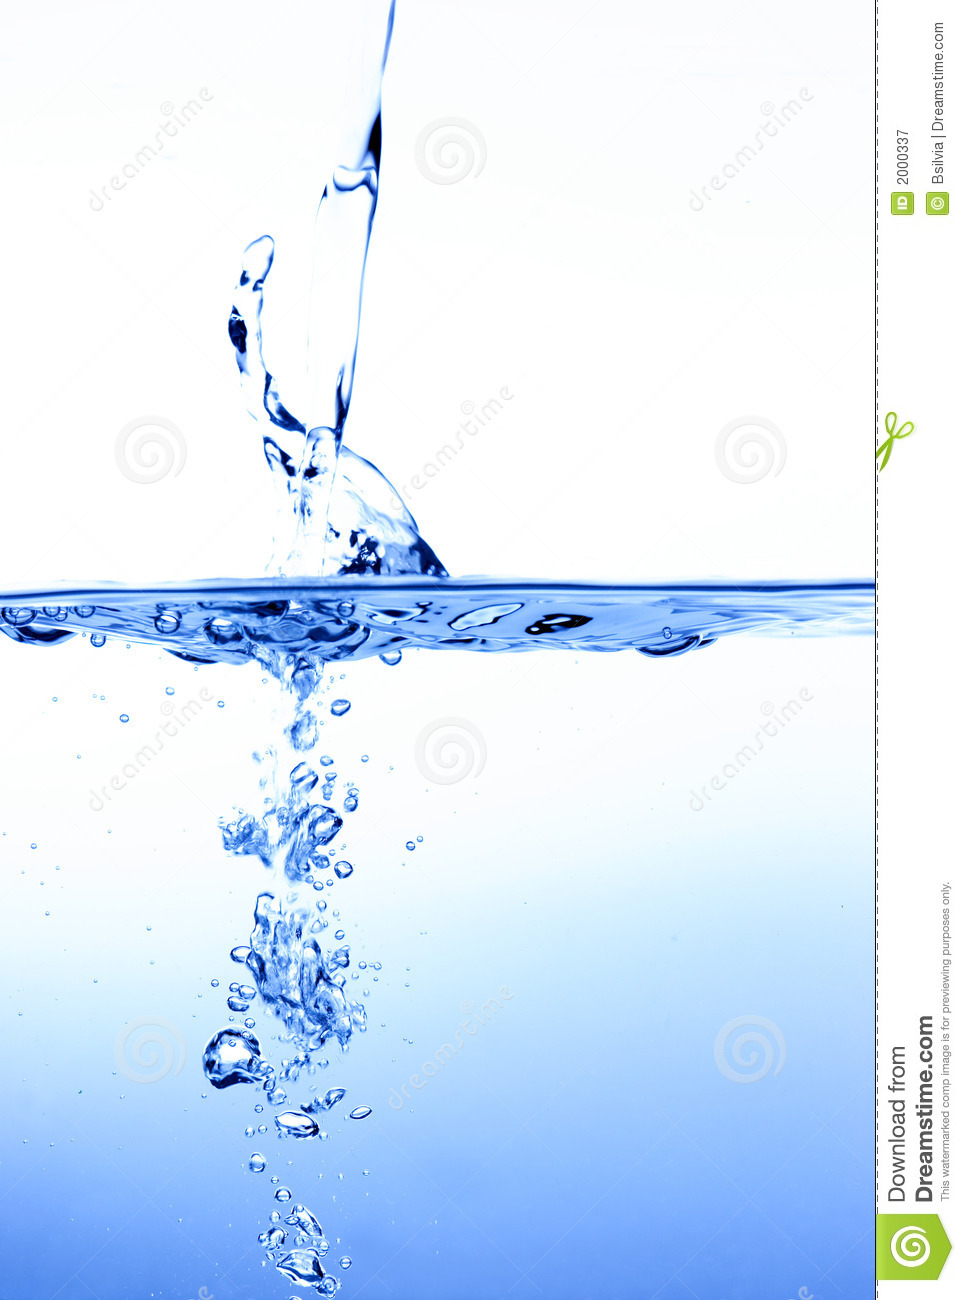 Water Shape Royalty Free Stock Photography - Image: 2000337